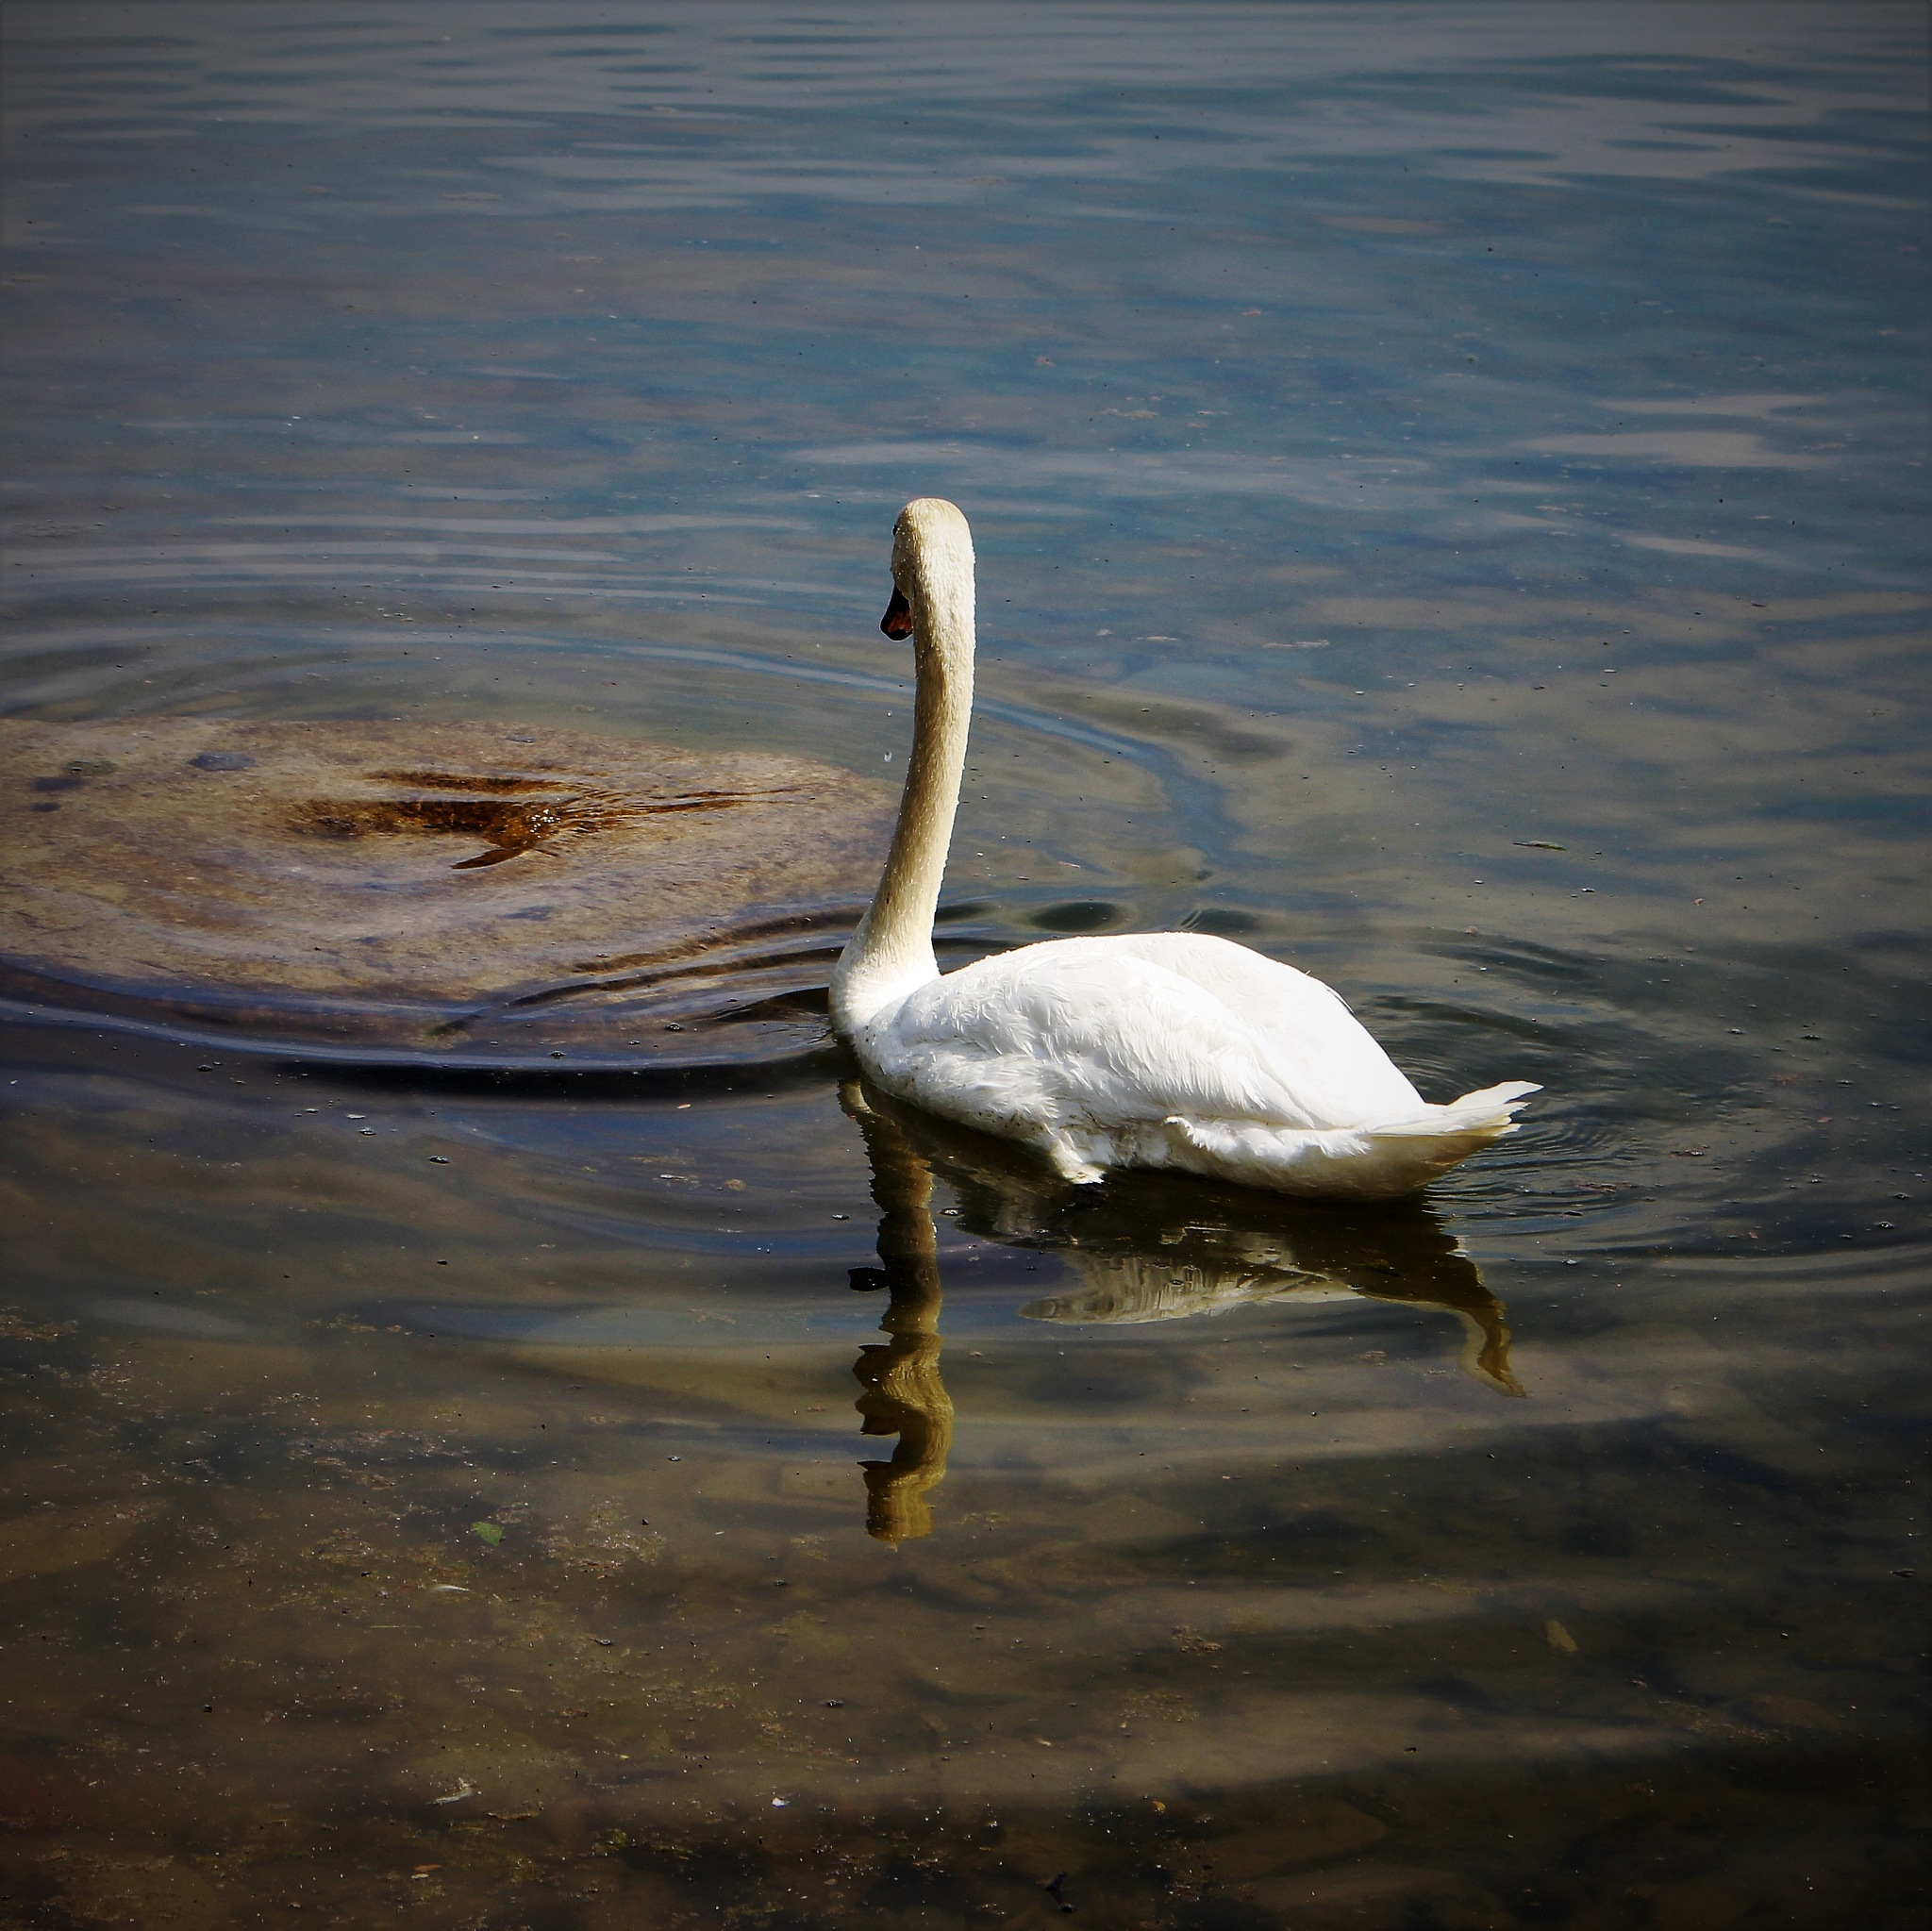 Swan in the Shallows by David Imrie